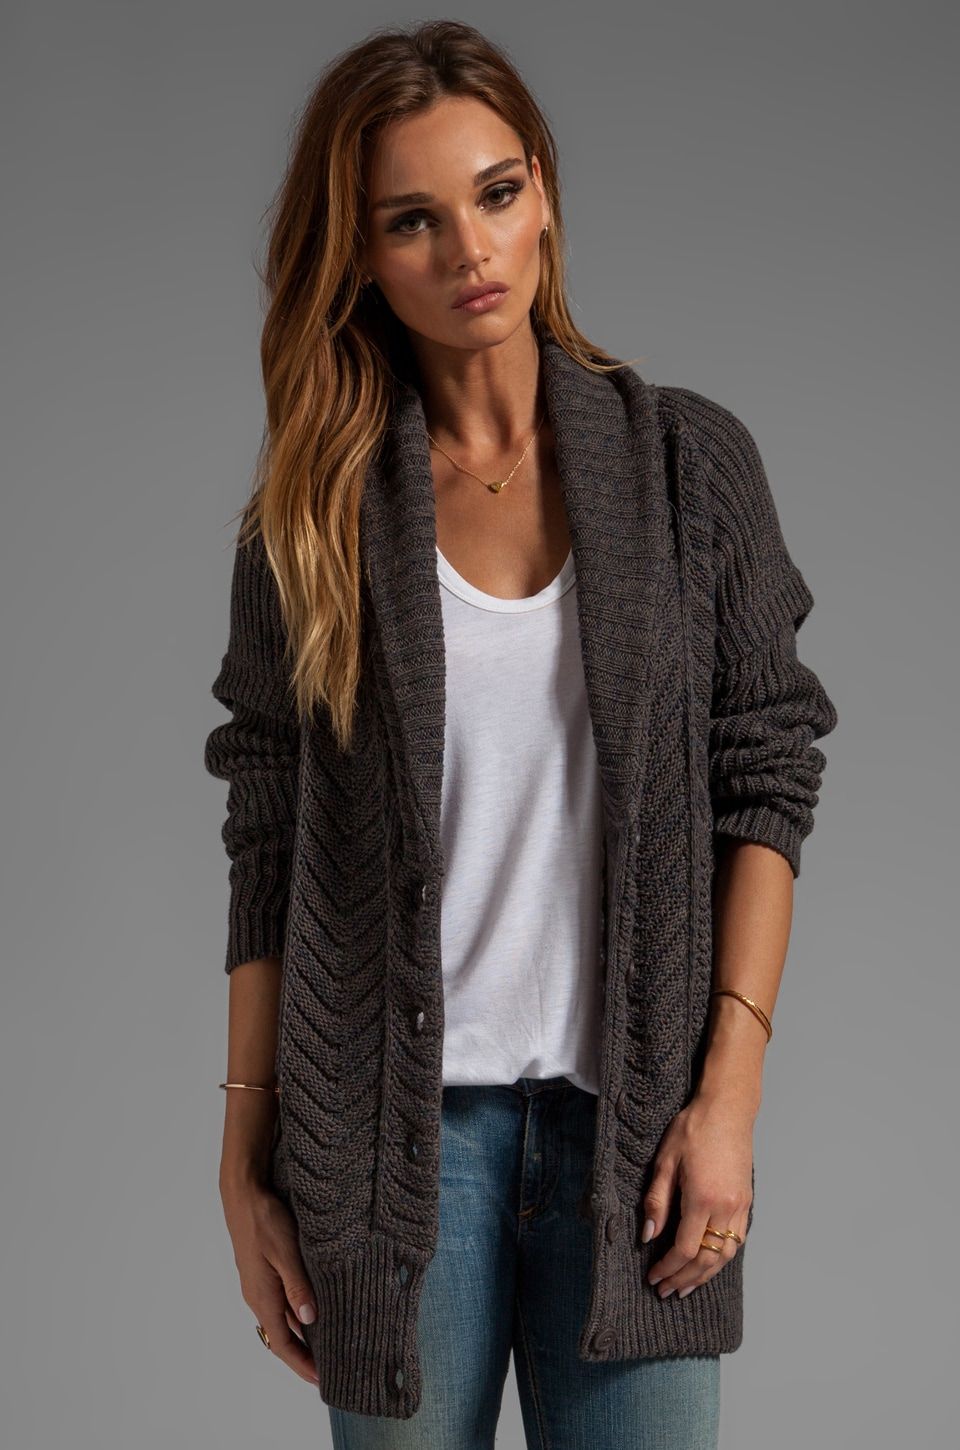 Line The Statesman Cardi in Sergeant